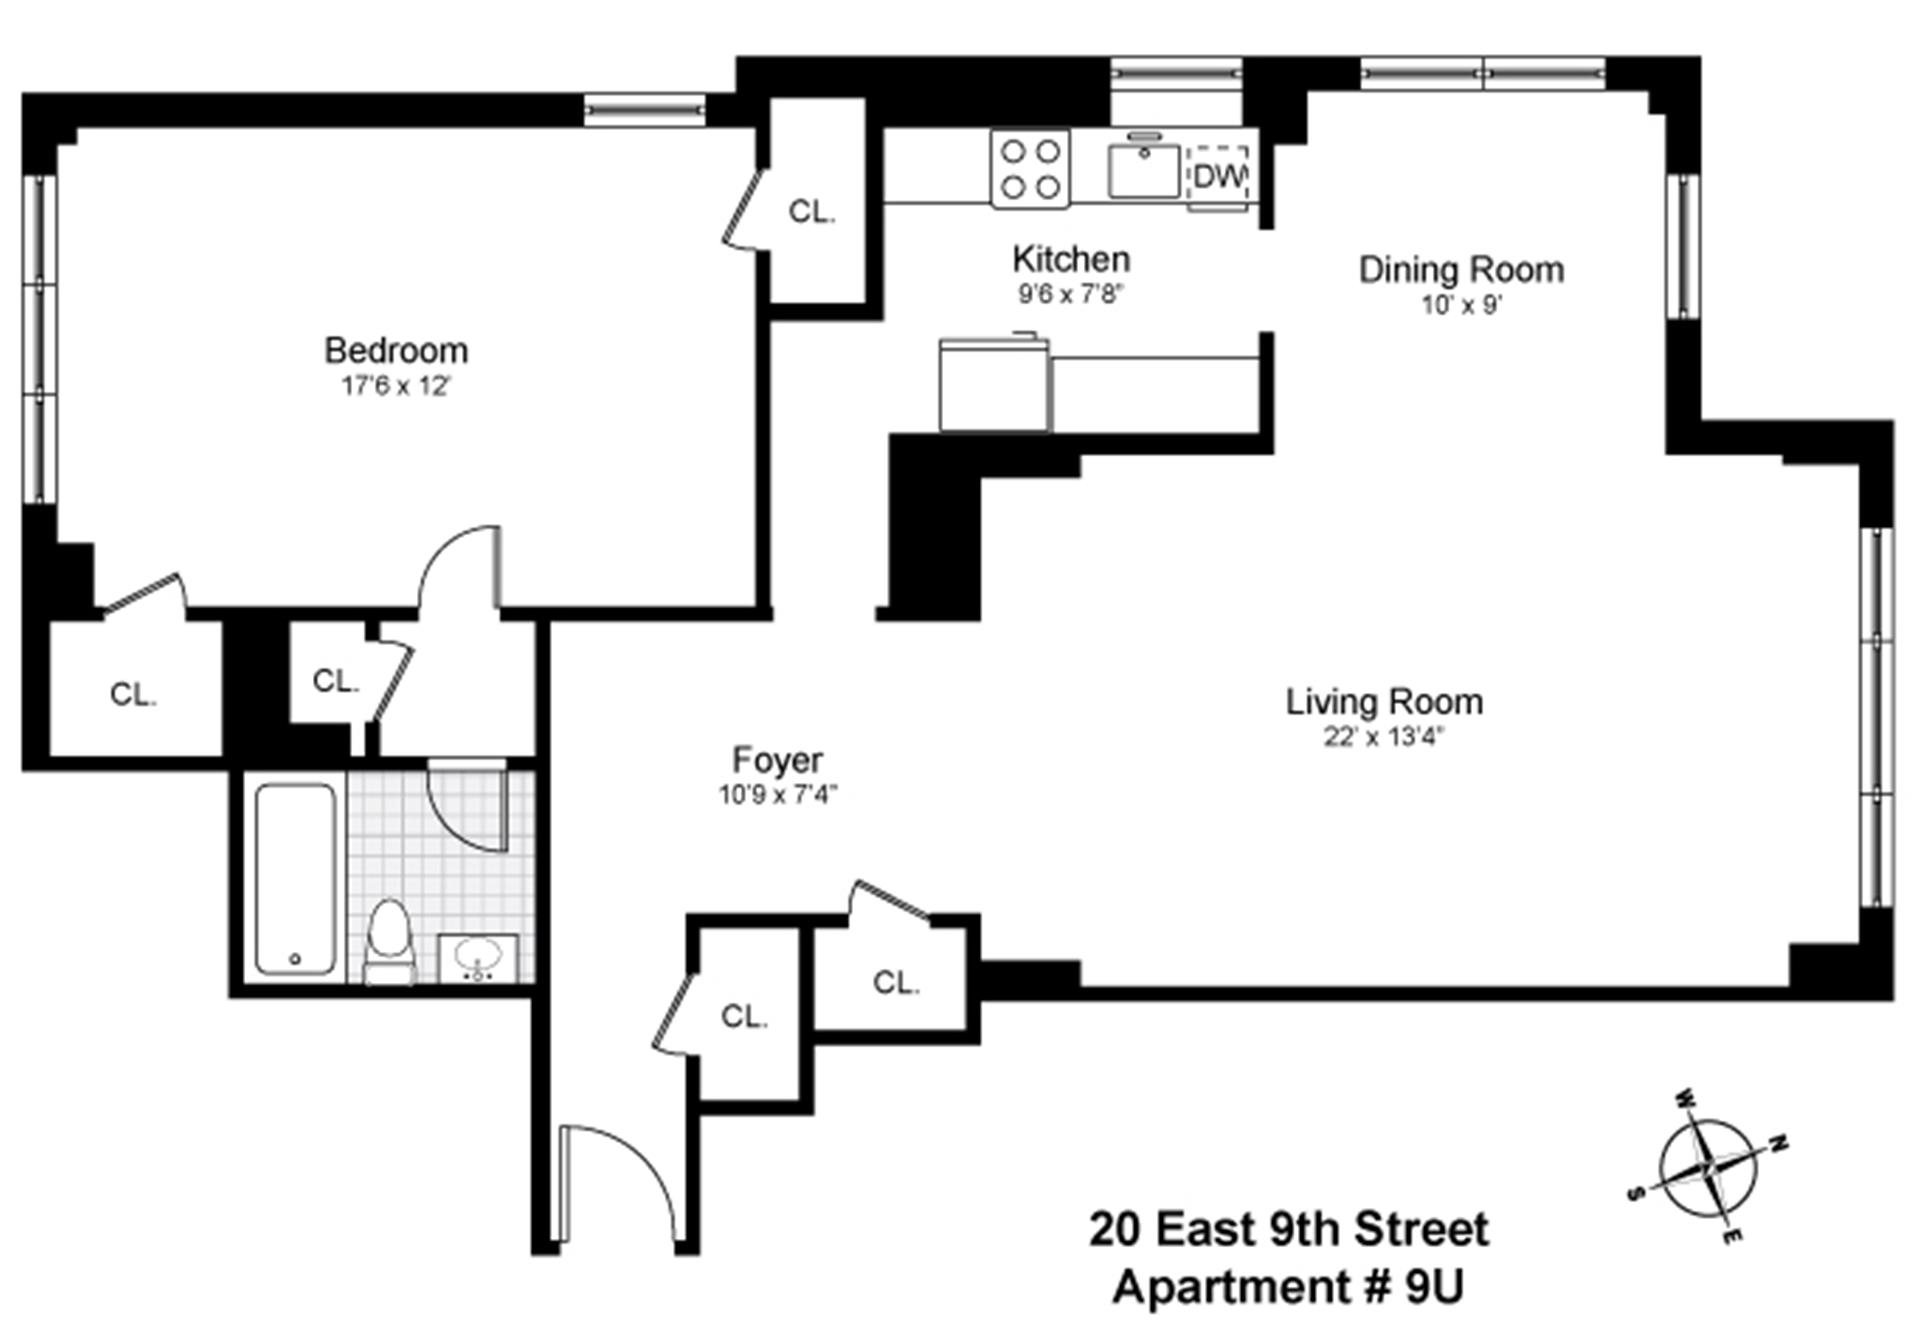 Floor plan of BREVOORT EAST, 20 East 9th St, 9U - Greenwich Village, New York